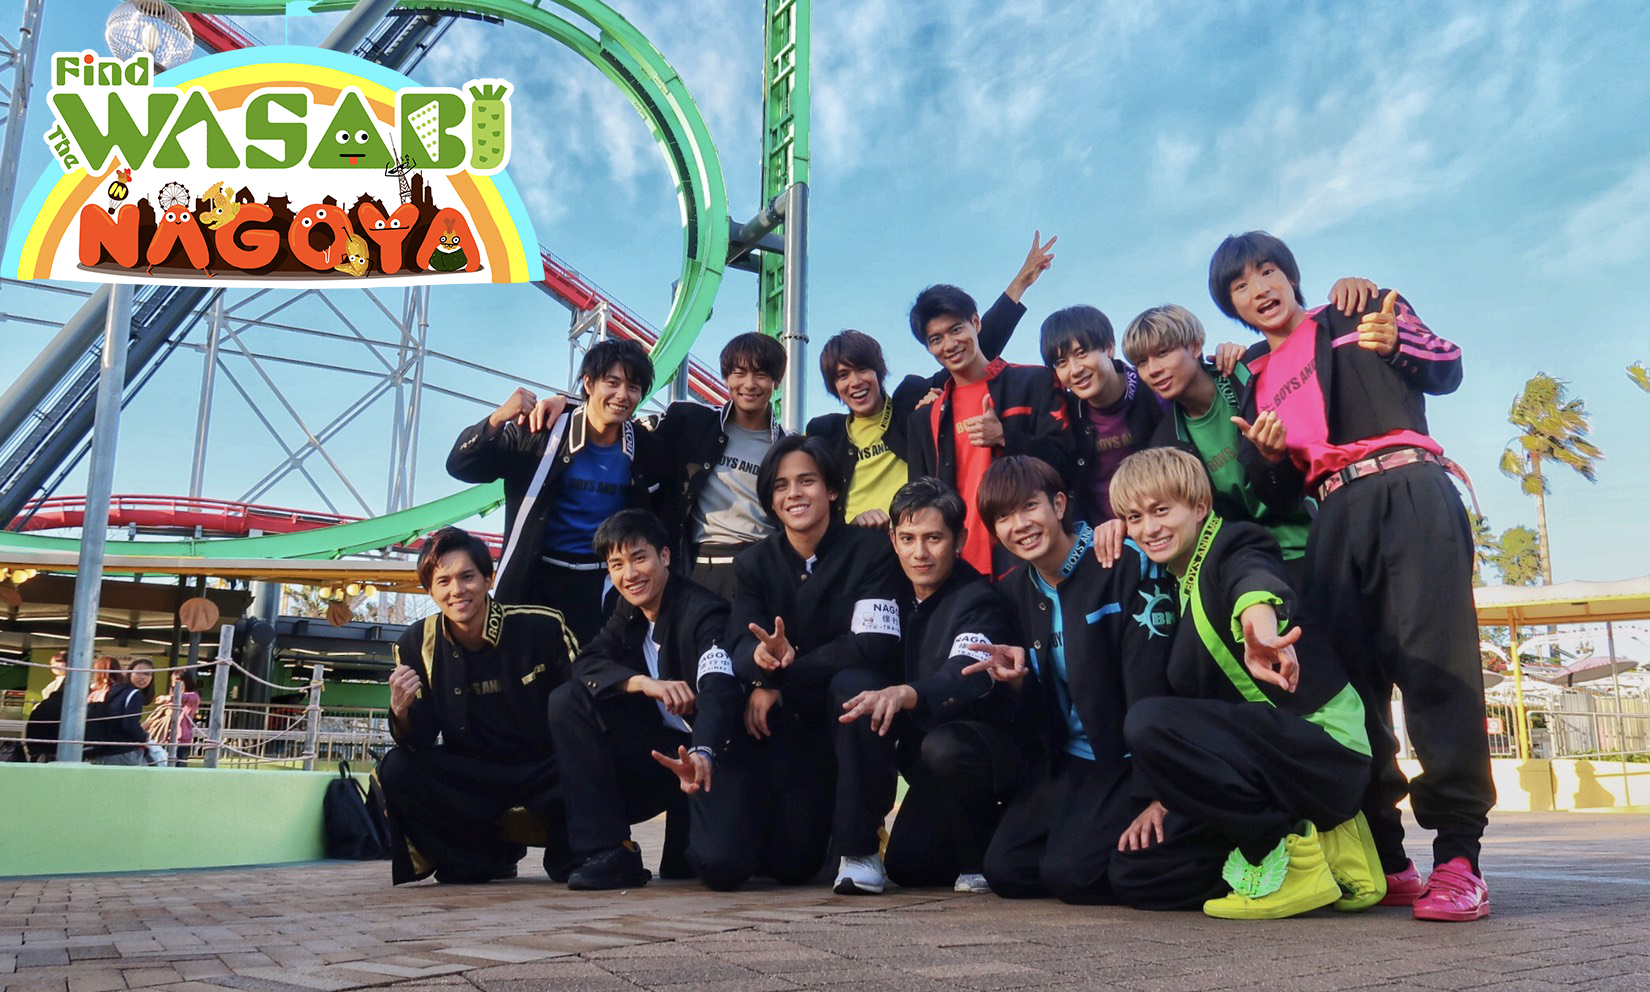 BOYS AND MEN出演「Find the WASABI in NAGOYA」秘蔵映像をParaviで独占配信!